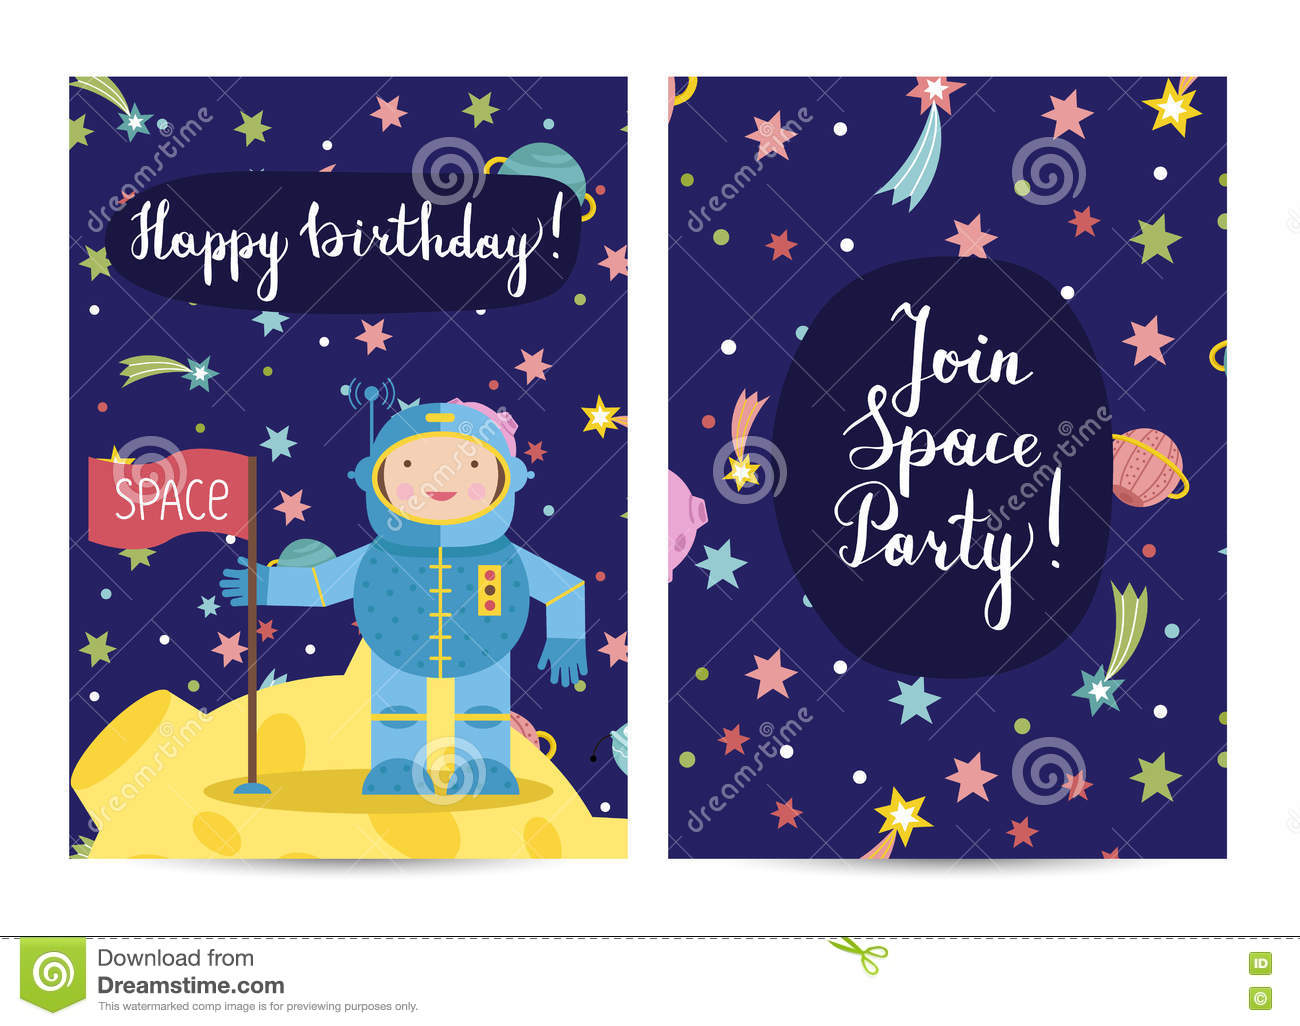 Happy birthday vector cartoon greeting cards set stock vector happy birthday cartoon greeting card on space theme smiling astronaut on moon with flag colorful stars planets fiery comets around vector illustration m4hsunfo